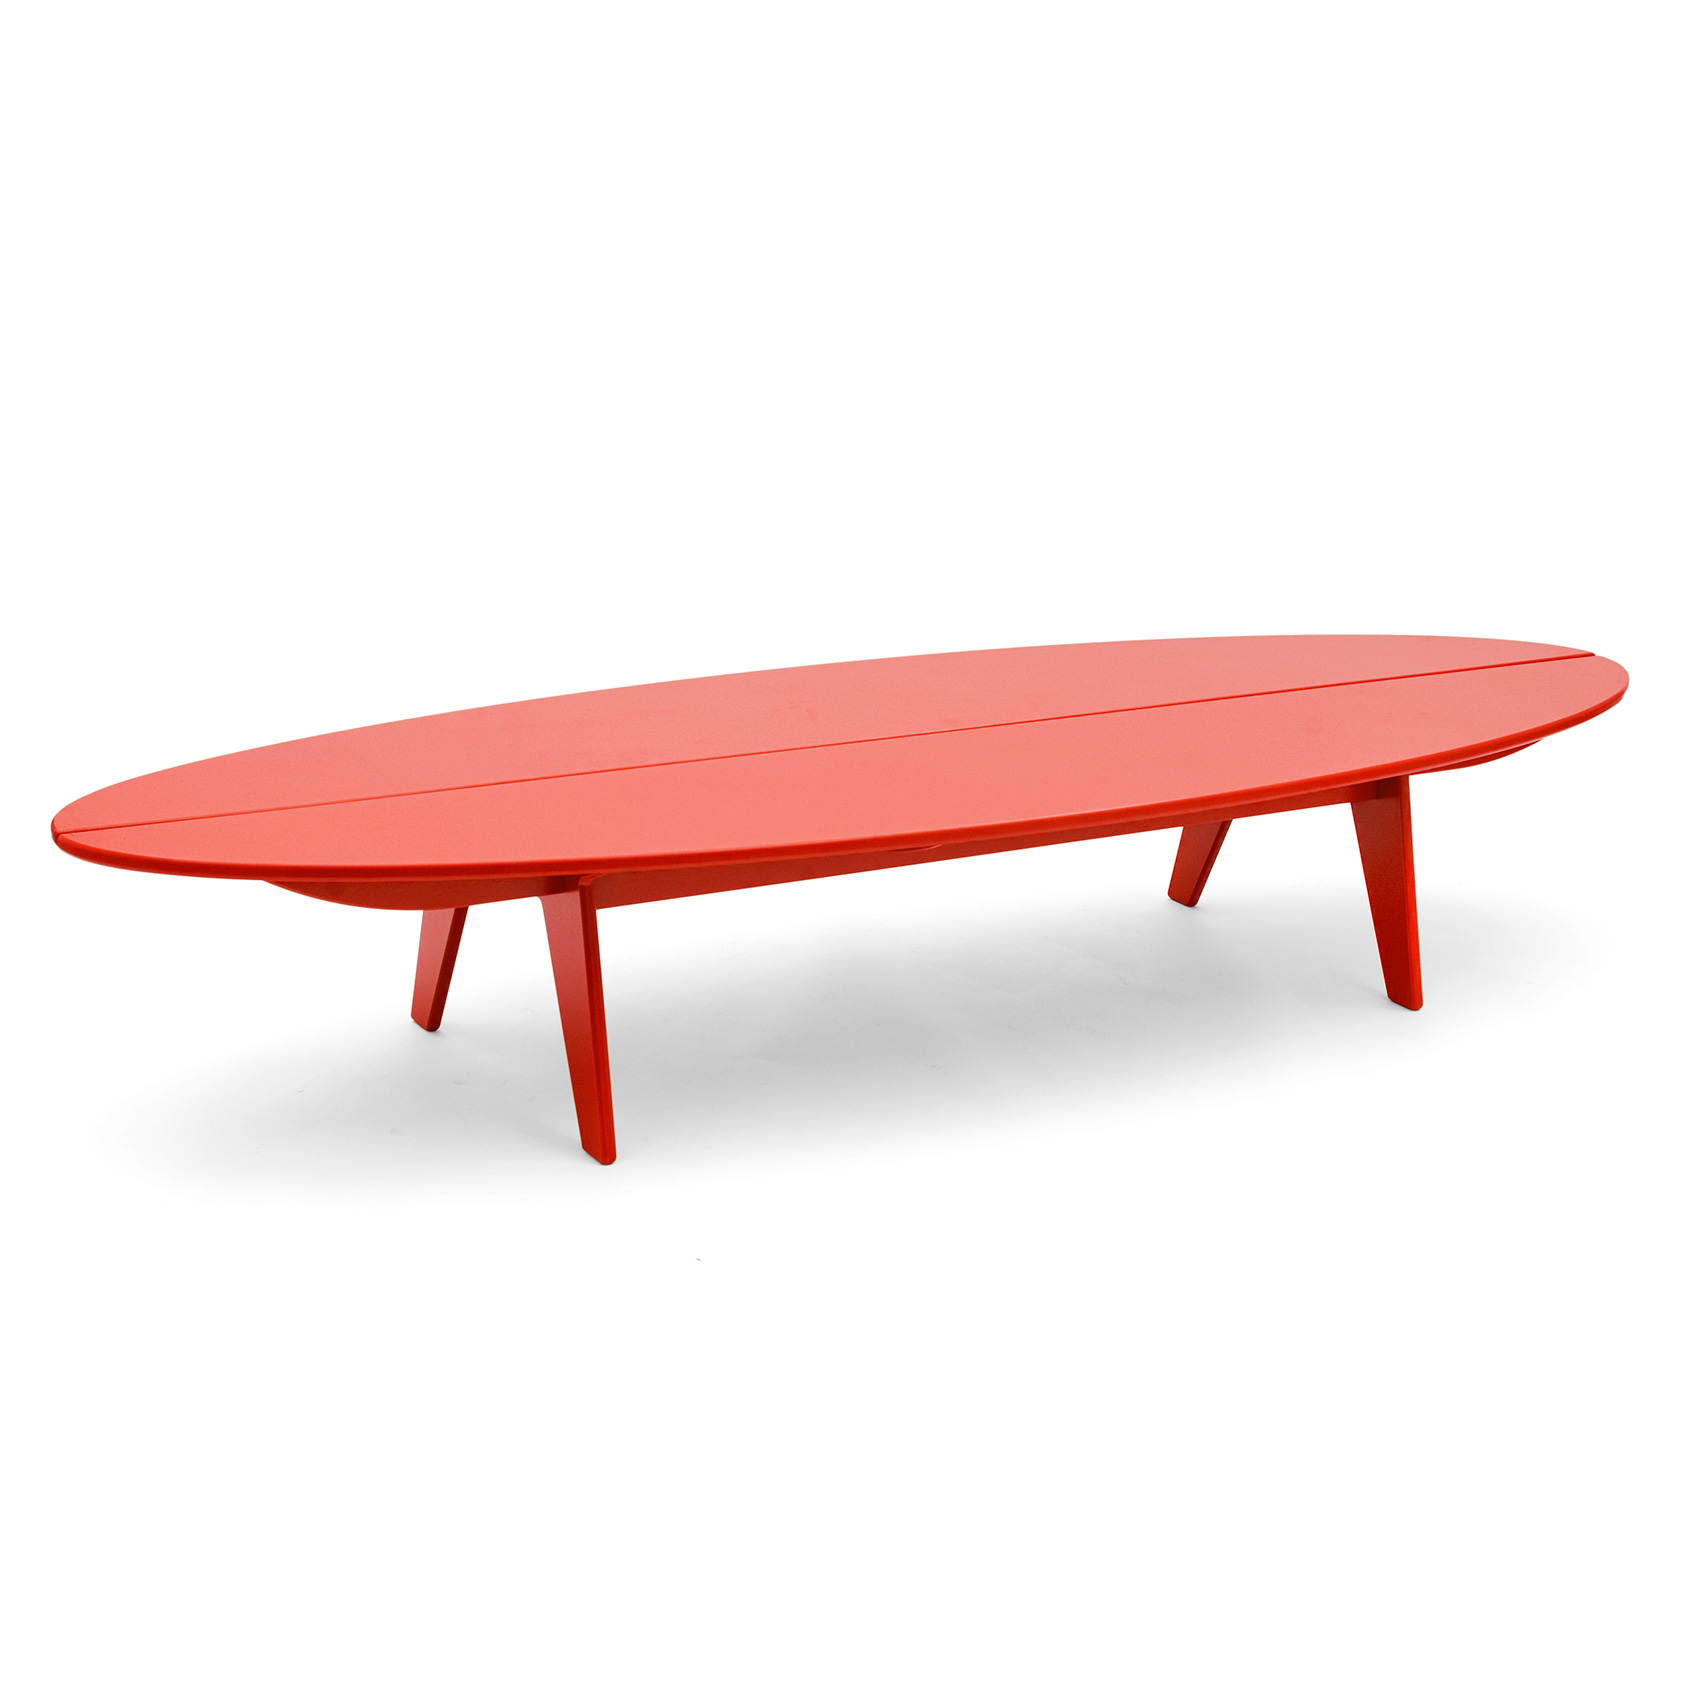 Surfboard table 183x61